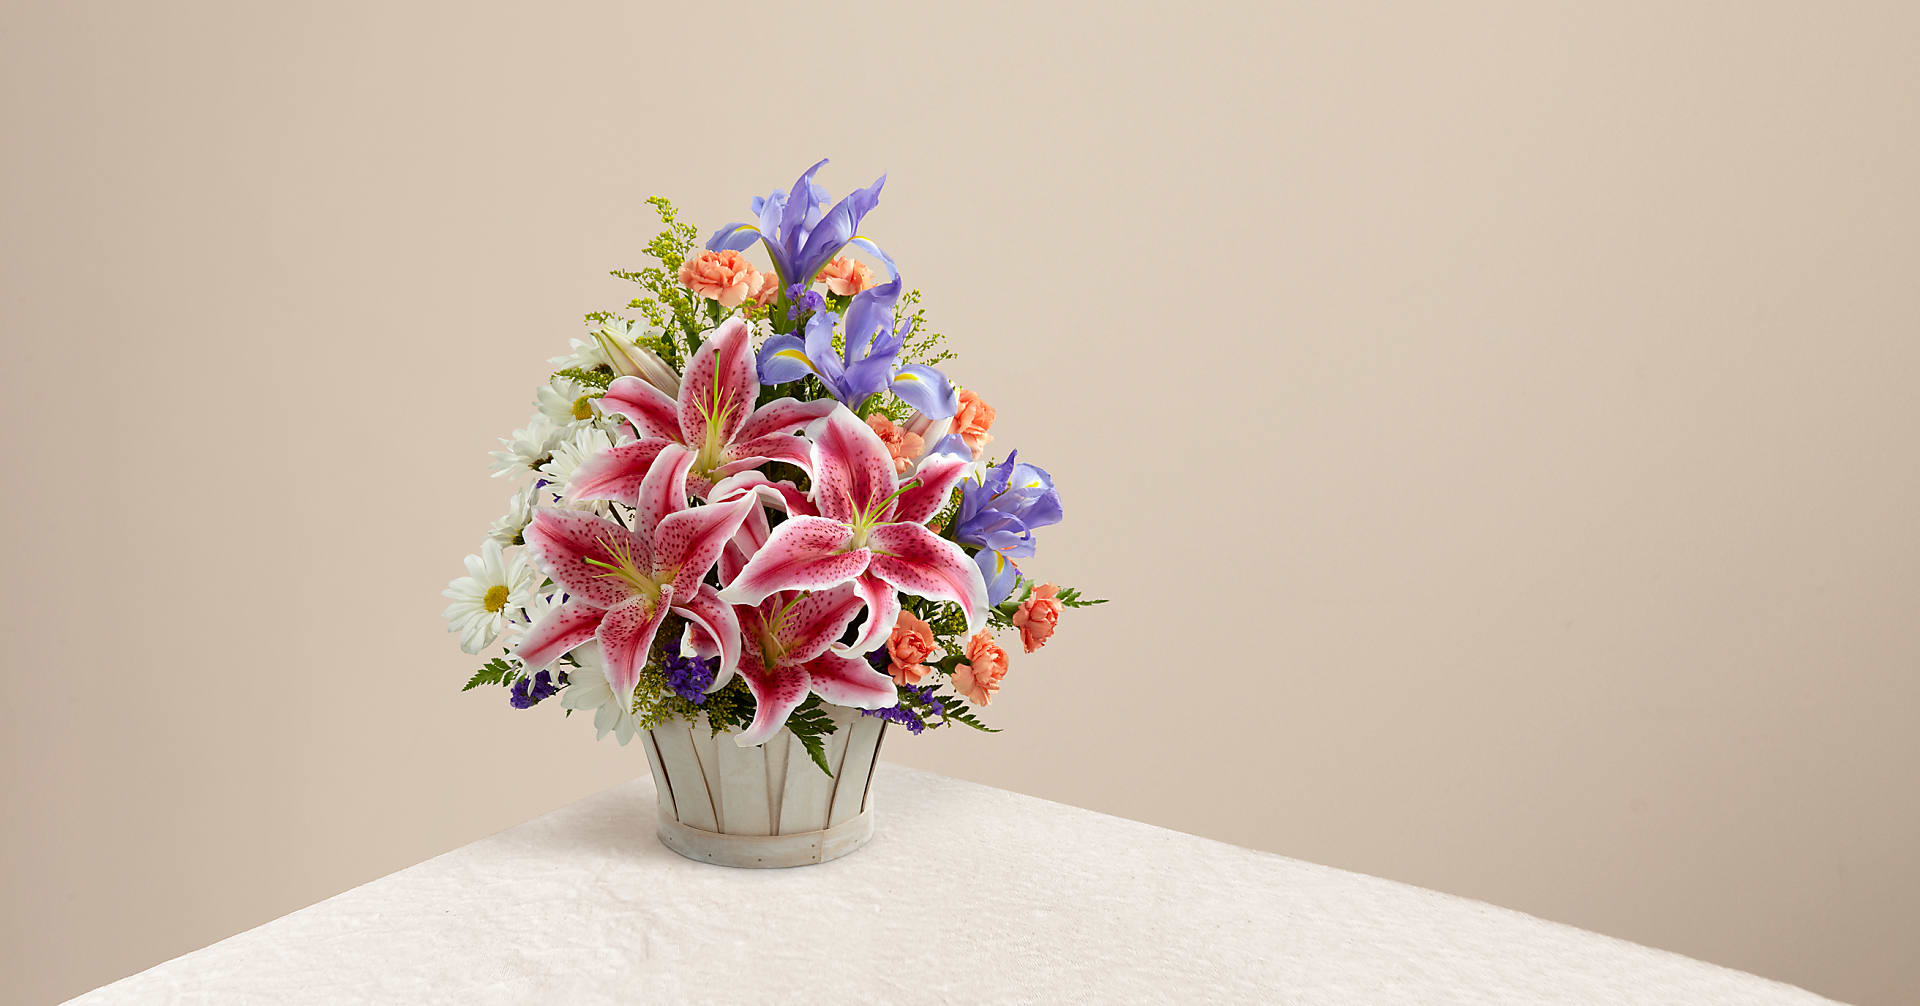 The Wondrous Nature™ Bouquet - Image 1 Of 3